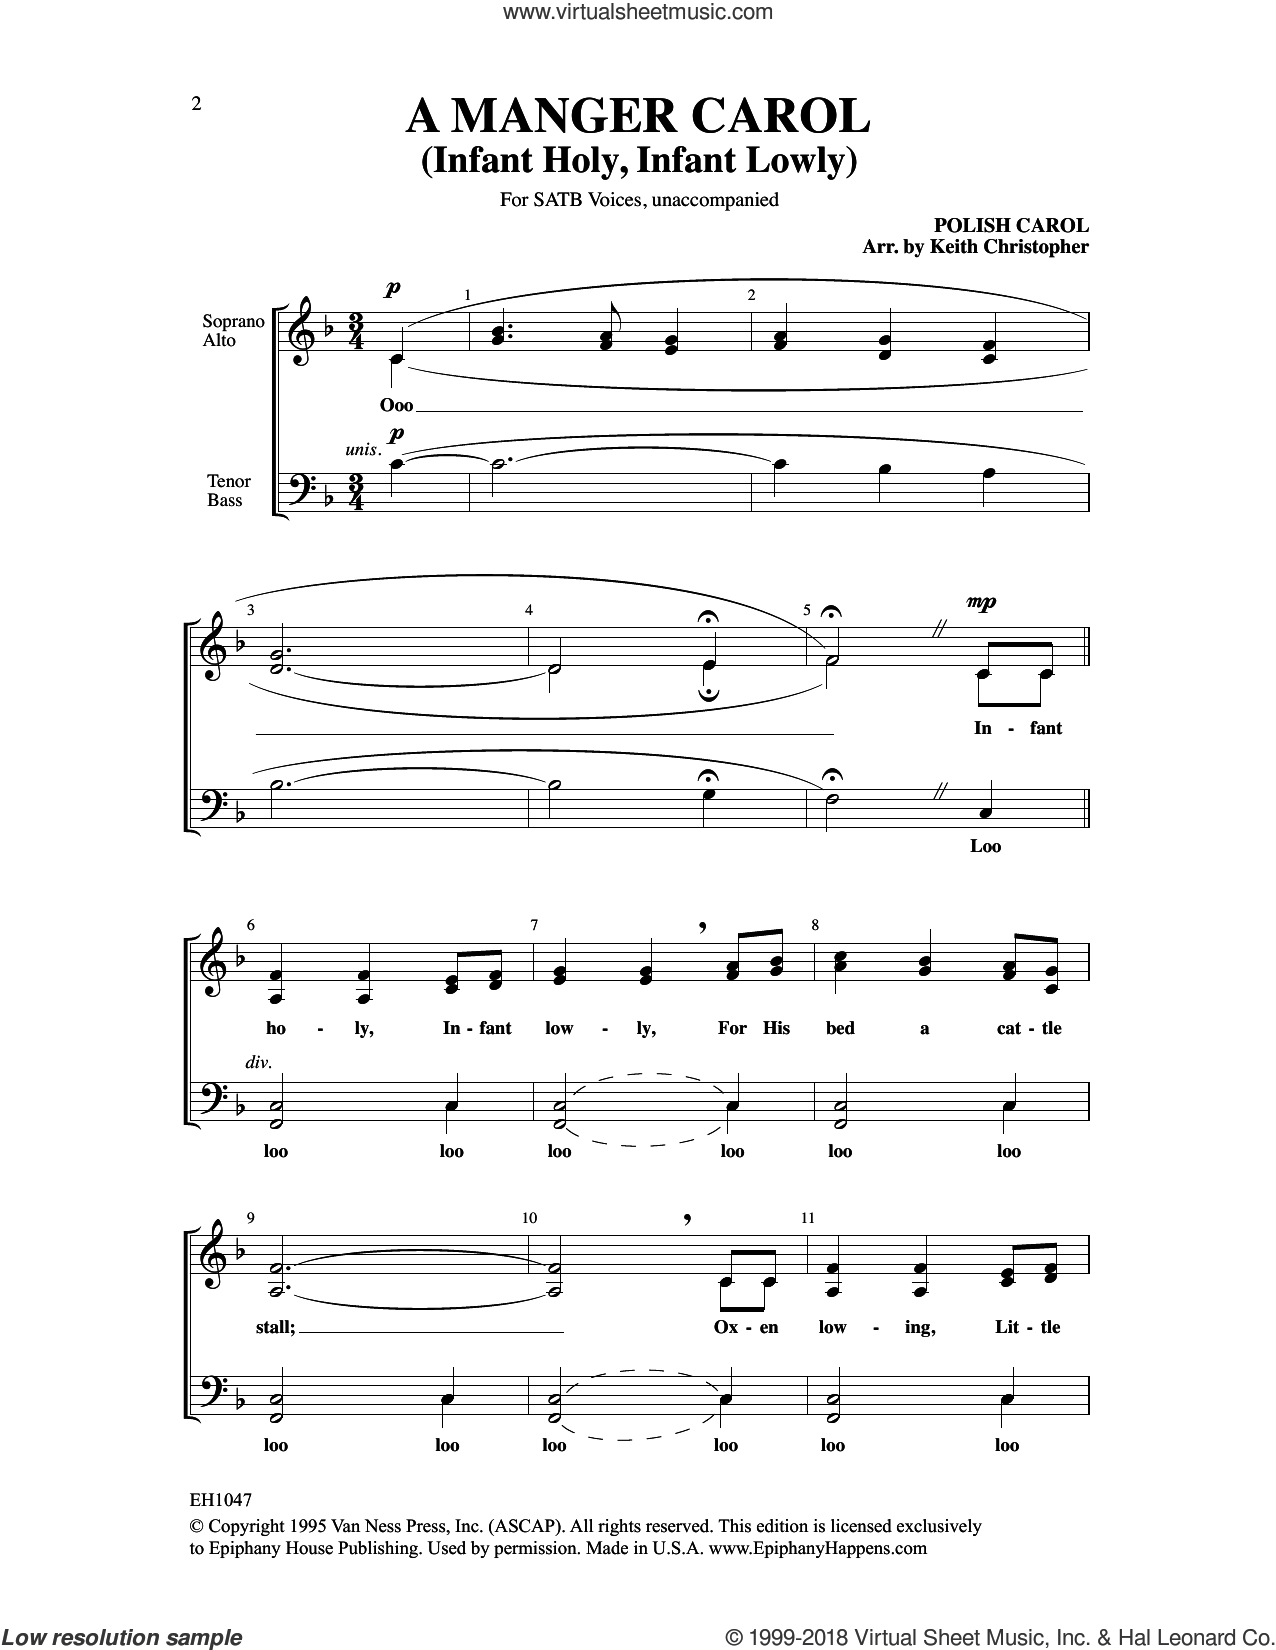 A Manger Carol (Infant Holy, Infant Lowly) sheet music for choir by Keith Christopher, intermediate skill level